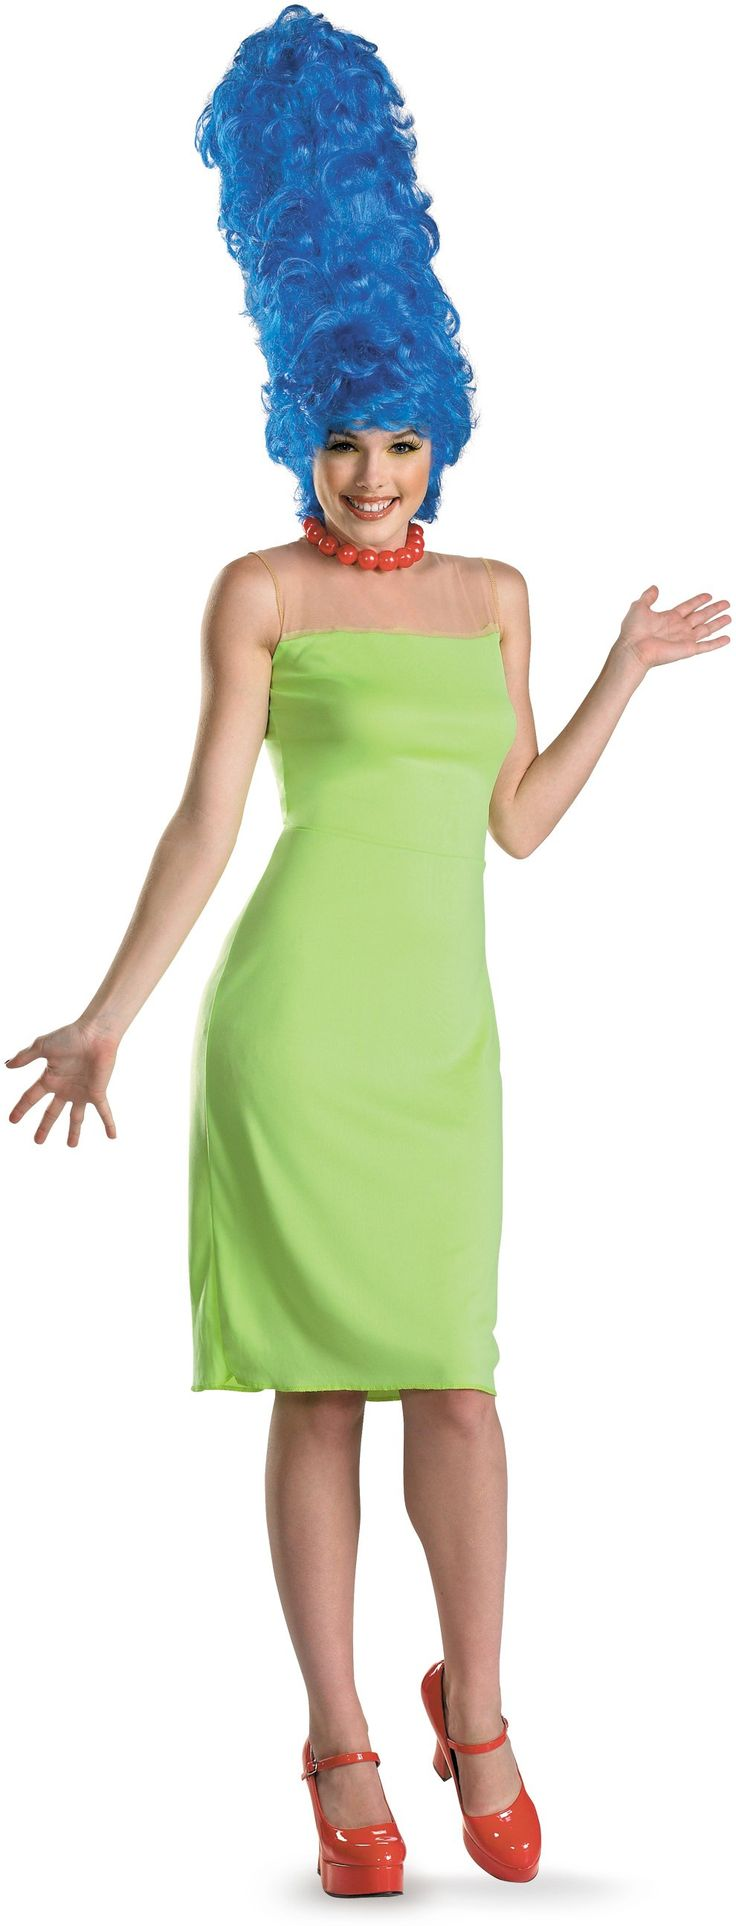 Marge: Simpsons Marg, Halloween Costumes, Adult Costumes, Women Costumes, Delux Marg, Marg Simpsons, Woman Costumes, Costumes Ideas, Simpsons Costumes